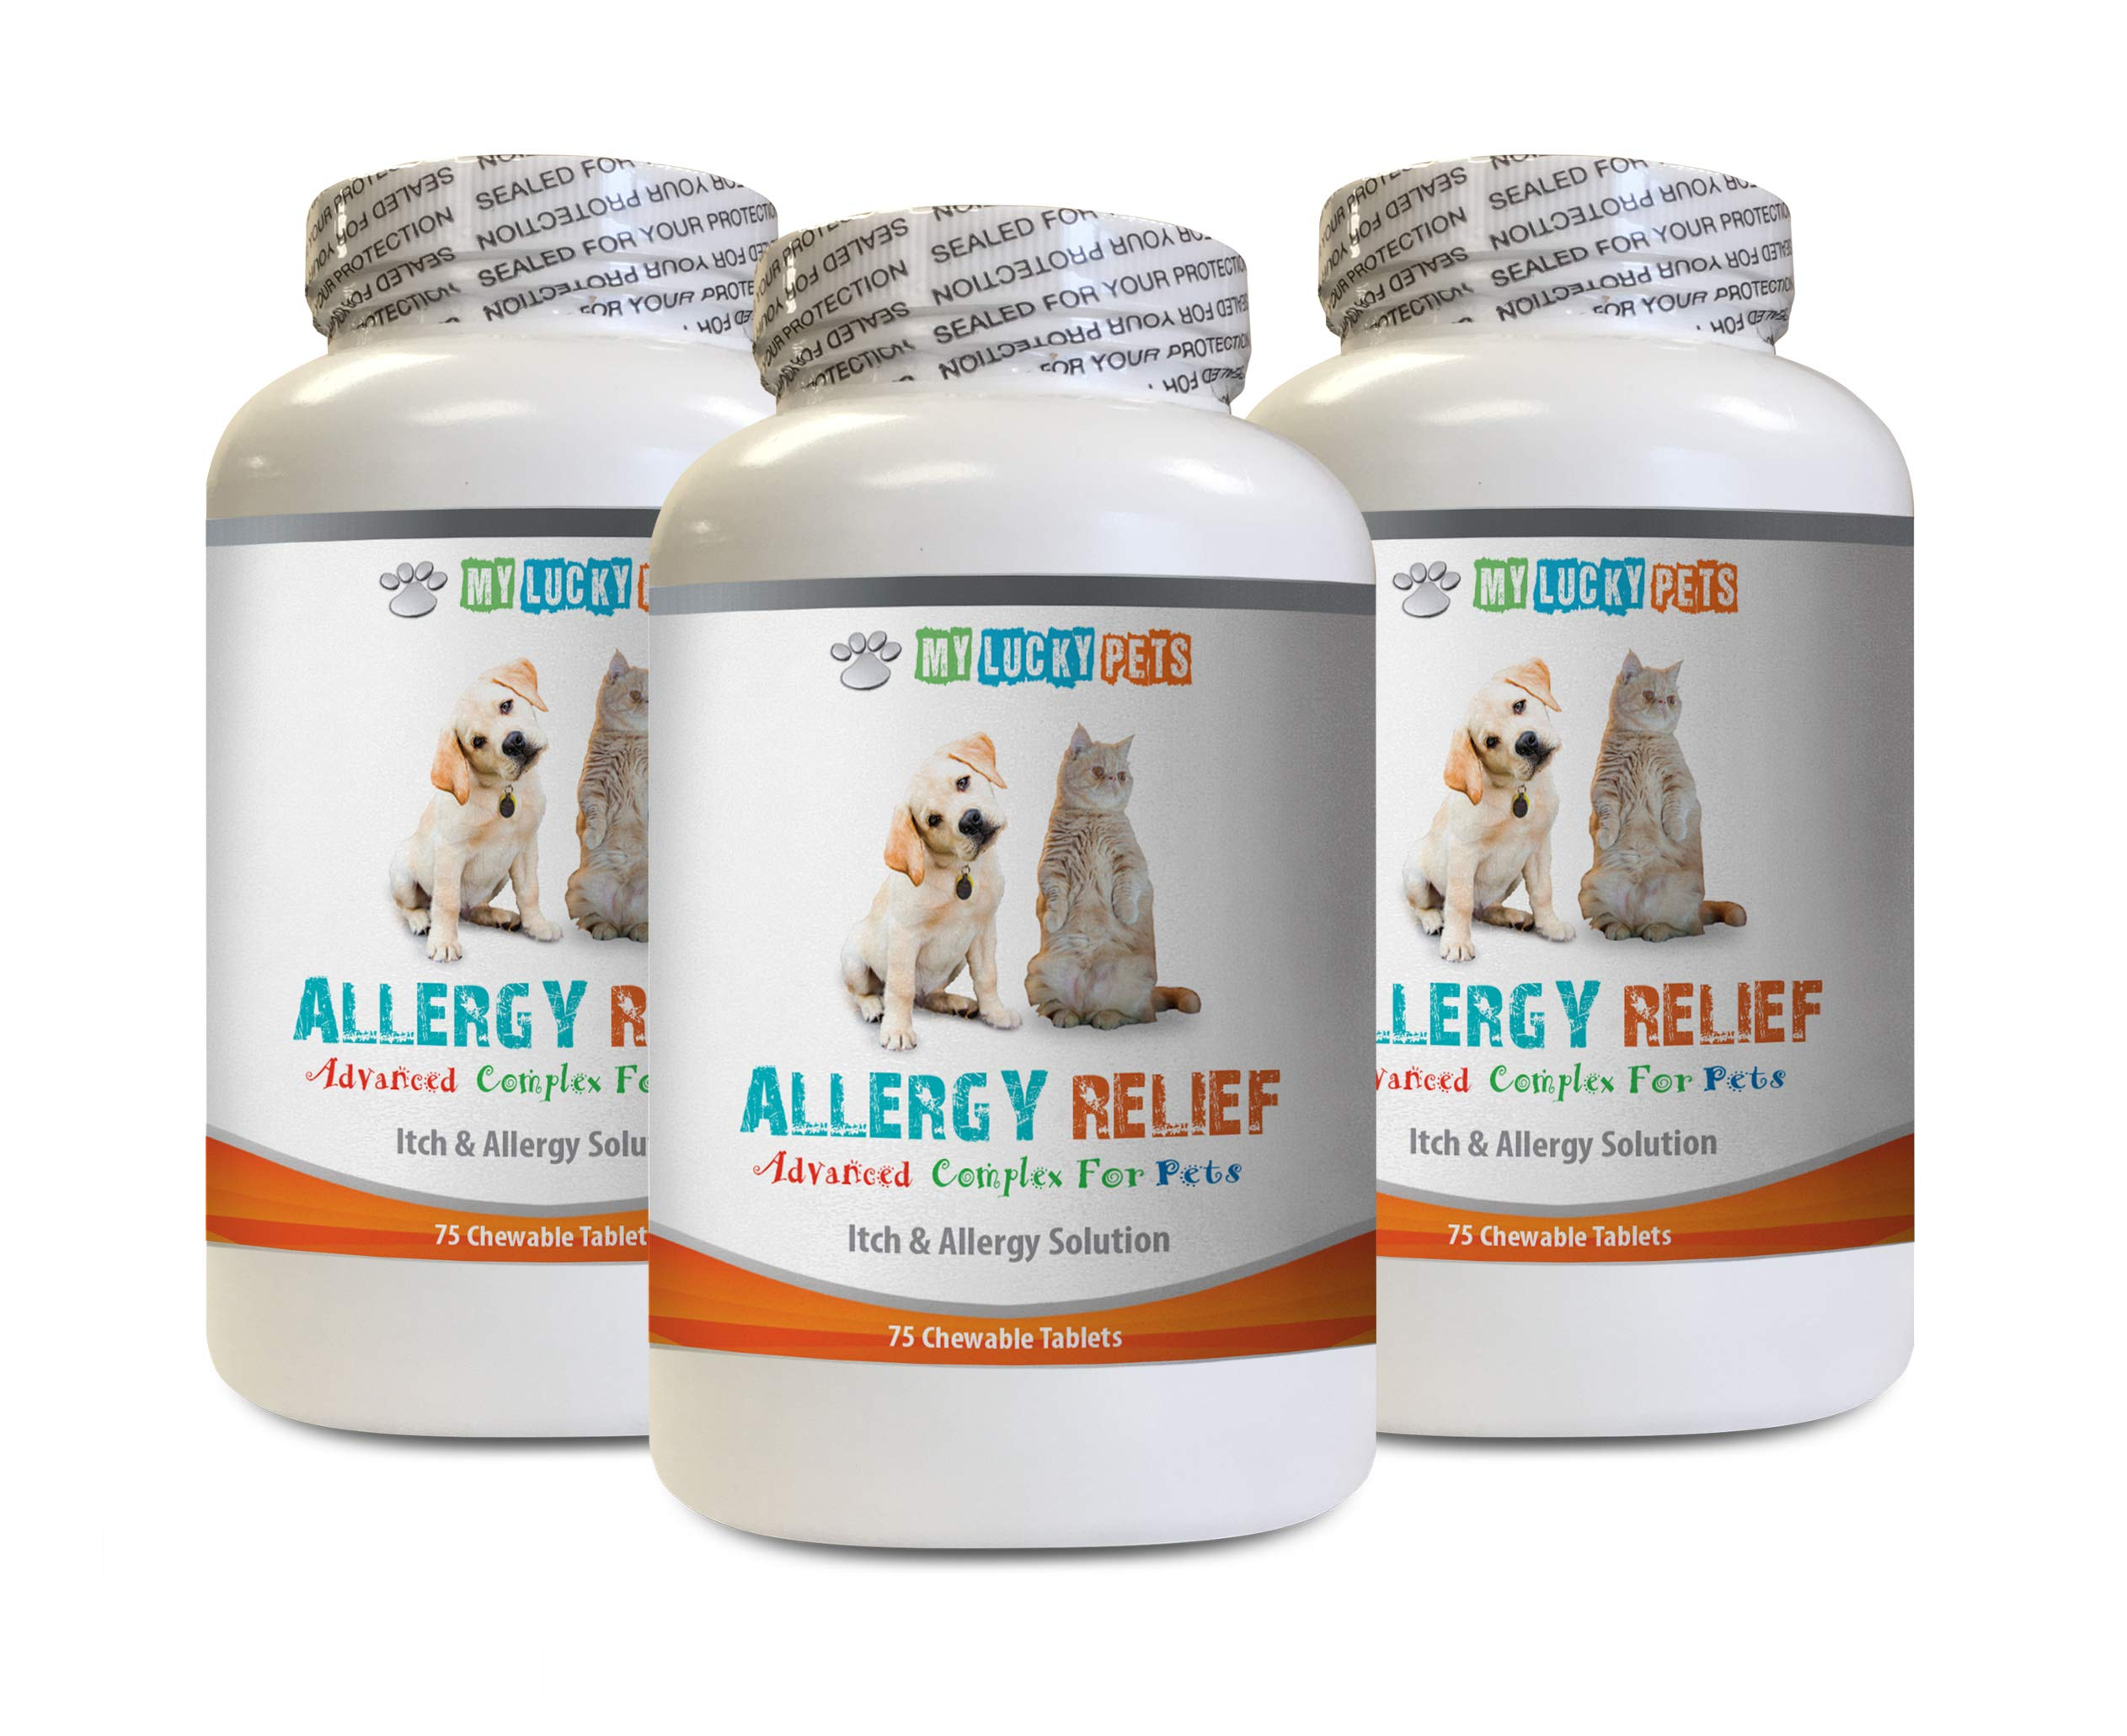 Dog Itchy Skin Relief - PET Allergy Relief - for Dogs and Cats - Lucky Itch Solution - Keep Fur Healthy - Burdock for Dogs - 3 Bottles (225 Chewable Tablets) by MY LUCKY PETS LLC